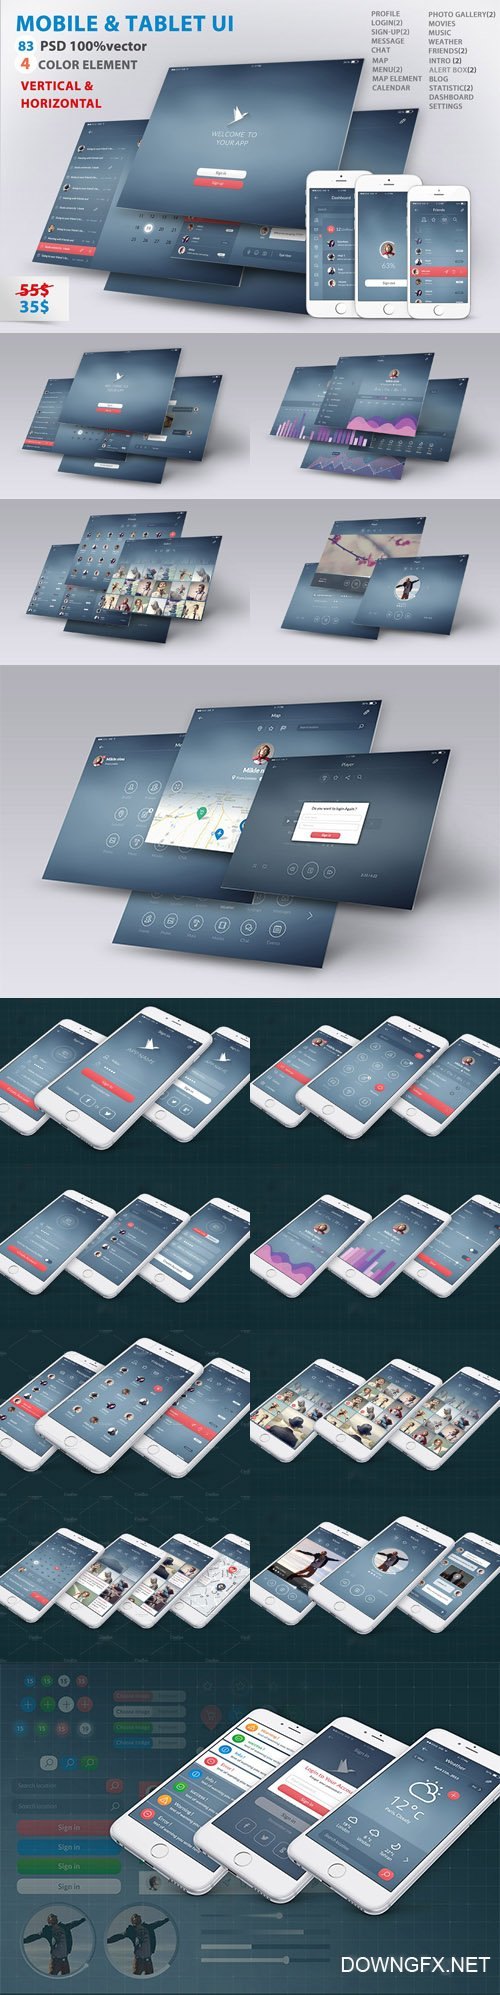 Mobile and Tablet UX UI kit - CM 1916611